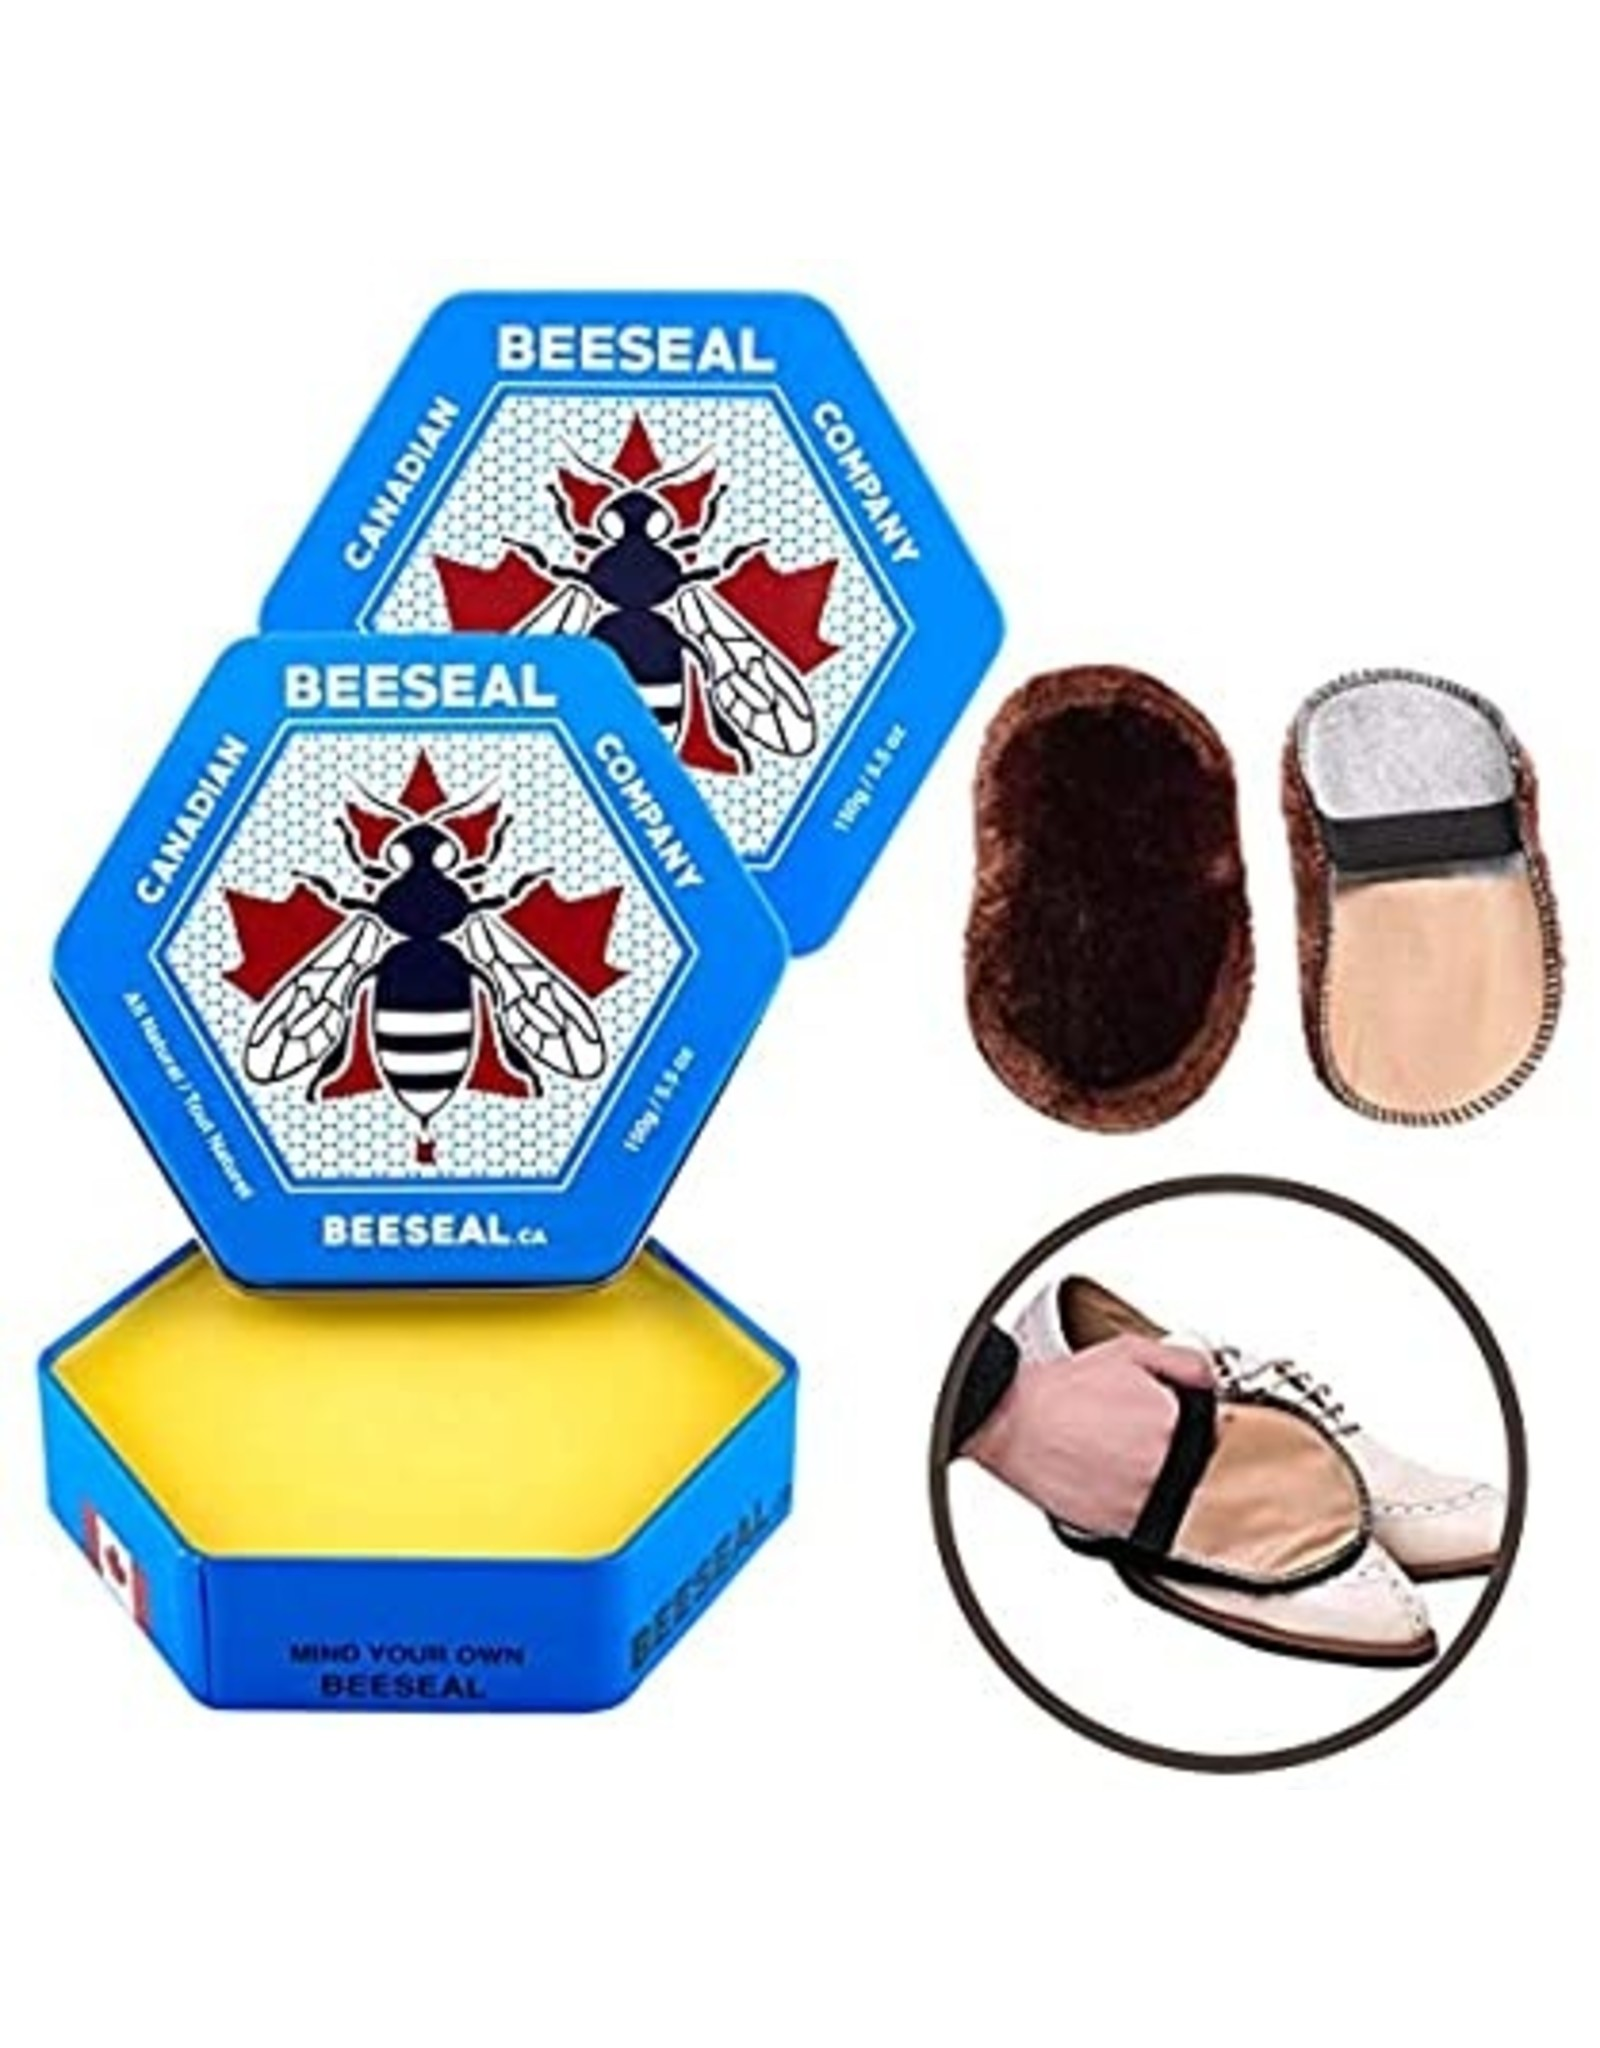 Canadian Beeseal Company 2 Canadian Beeseal 150g + 1 Gant de polissage